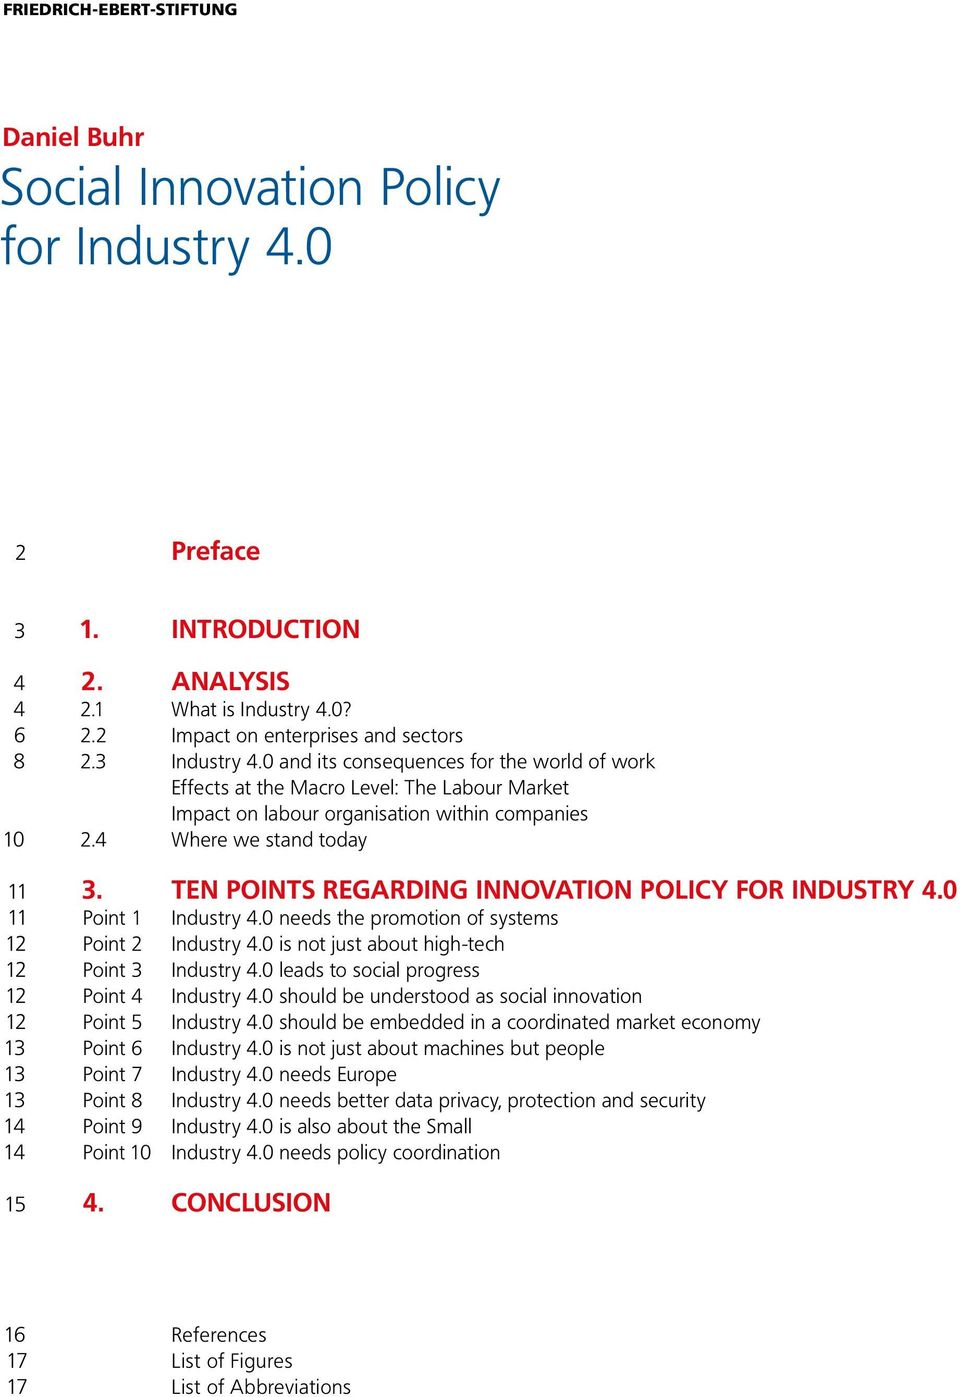 TEN POINTS REGARDING INNOVATION POLICY FOR INDUSTRY 4.0 Point 1 Industry 4.0 needs the promotion of systems Point 2 Industry 4.0 is not just about high-tech Point 3 Industry 4.